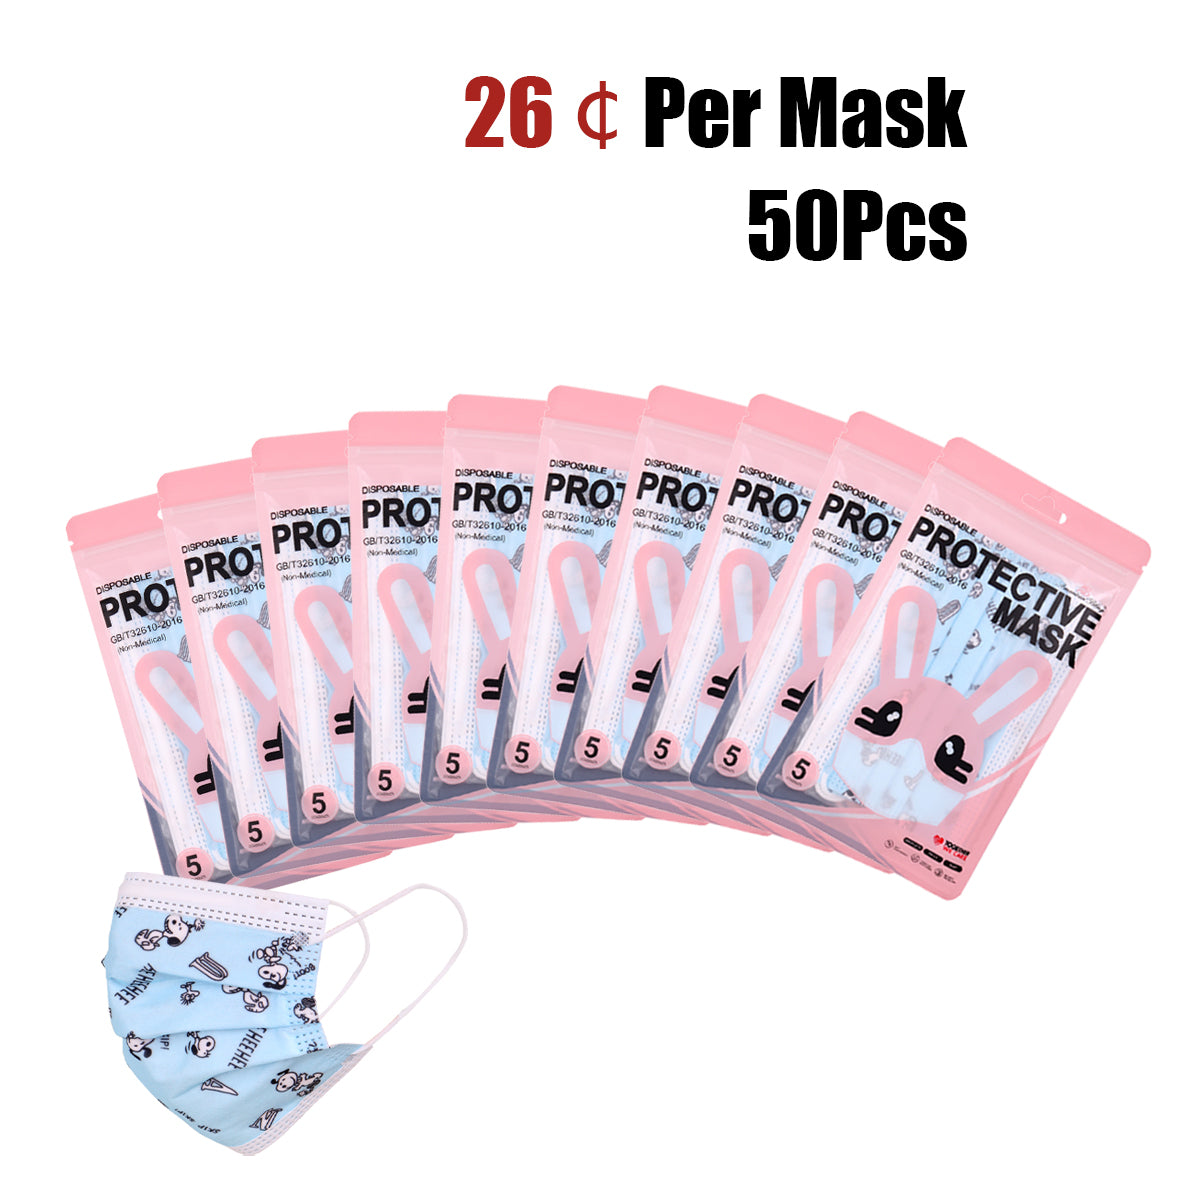 50PCS American Bling Kids Various Cartoon Prints 3 Ply Disposable Face Mask (5Pcs/Pack)